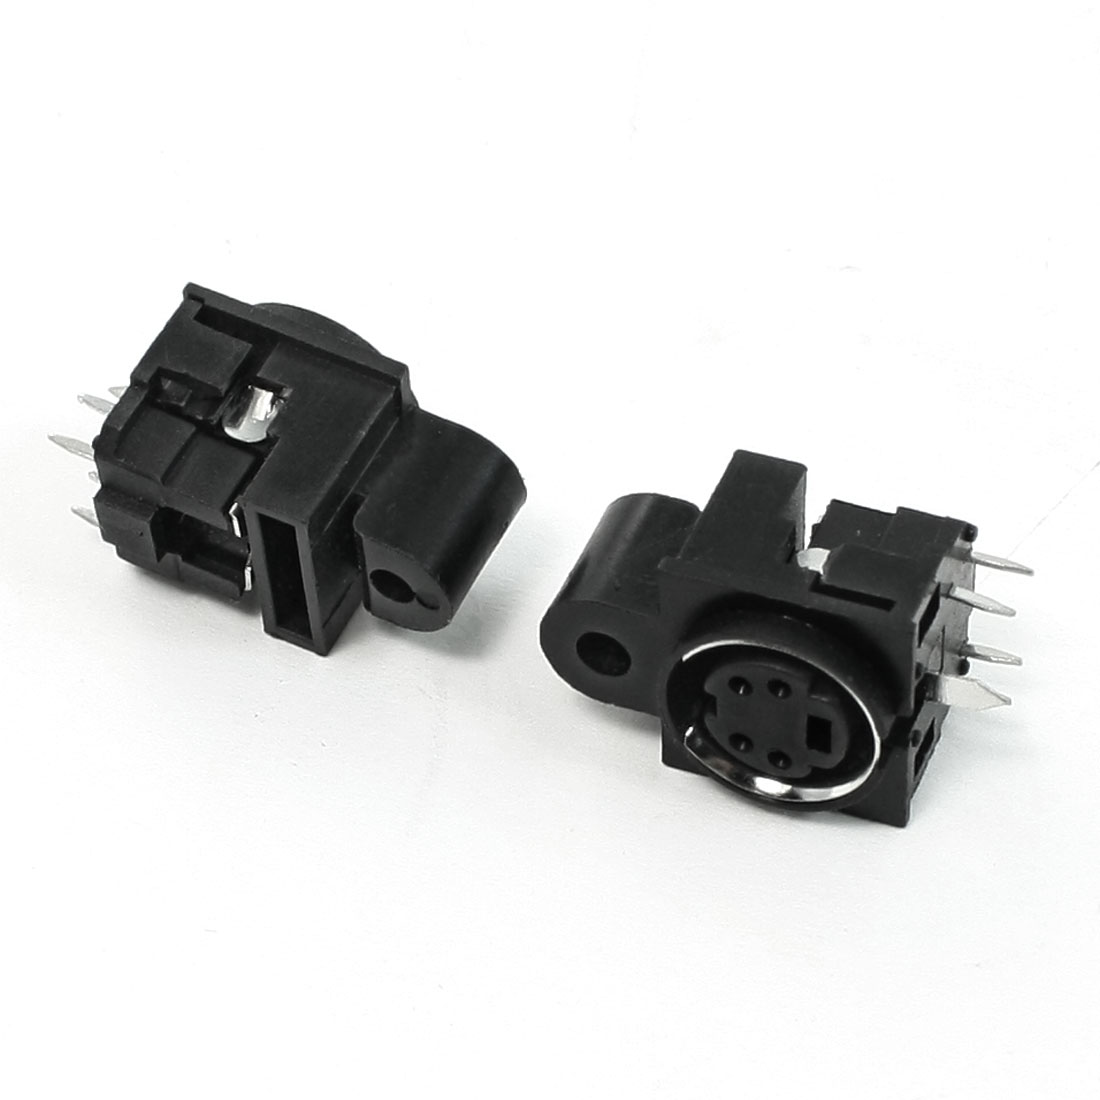 Vertical PCB Mount DIN 4 Pin Female S-video Connector Head Adapter Sockets 2 Pcs